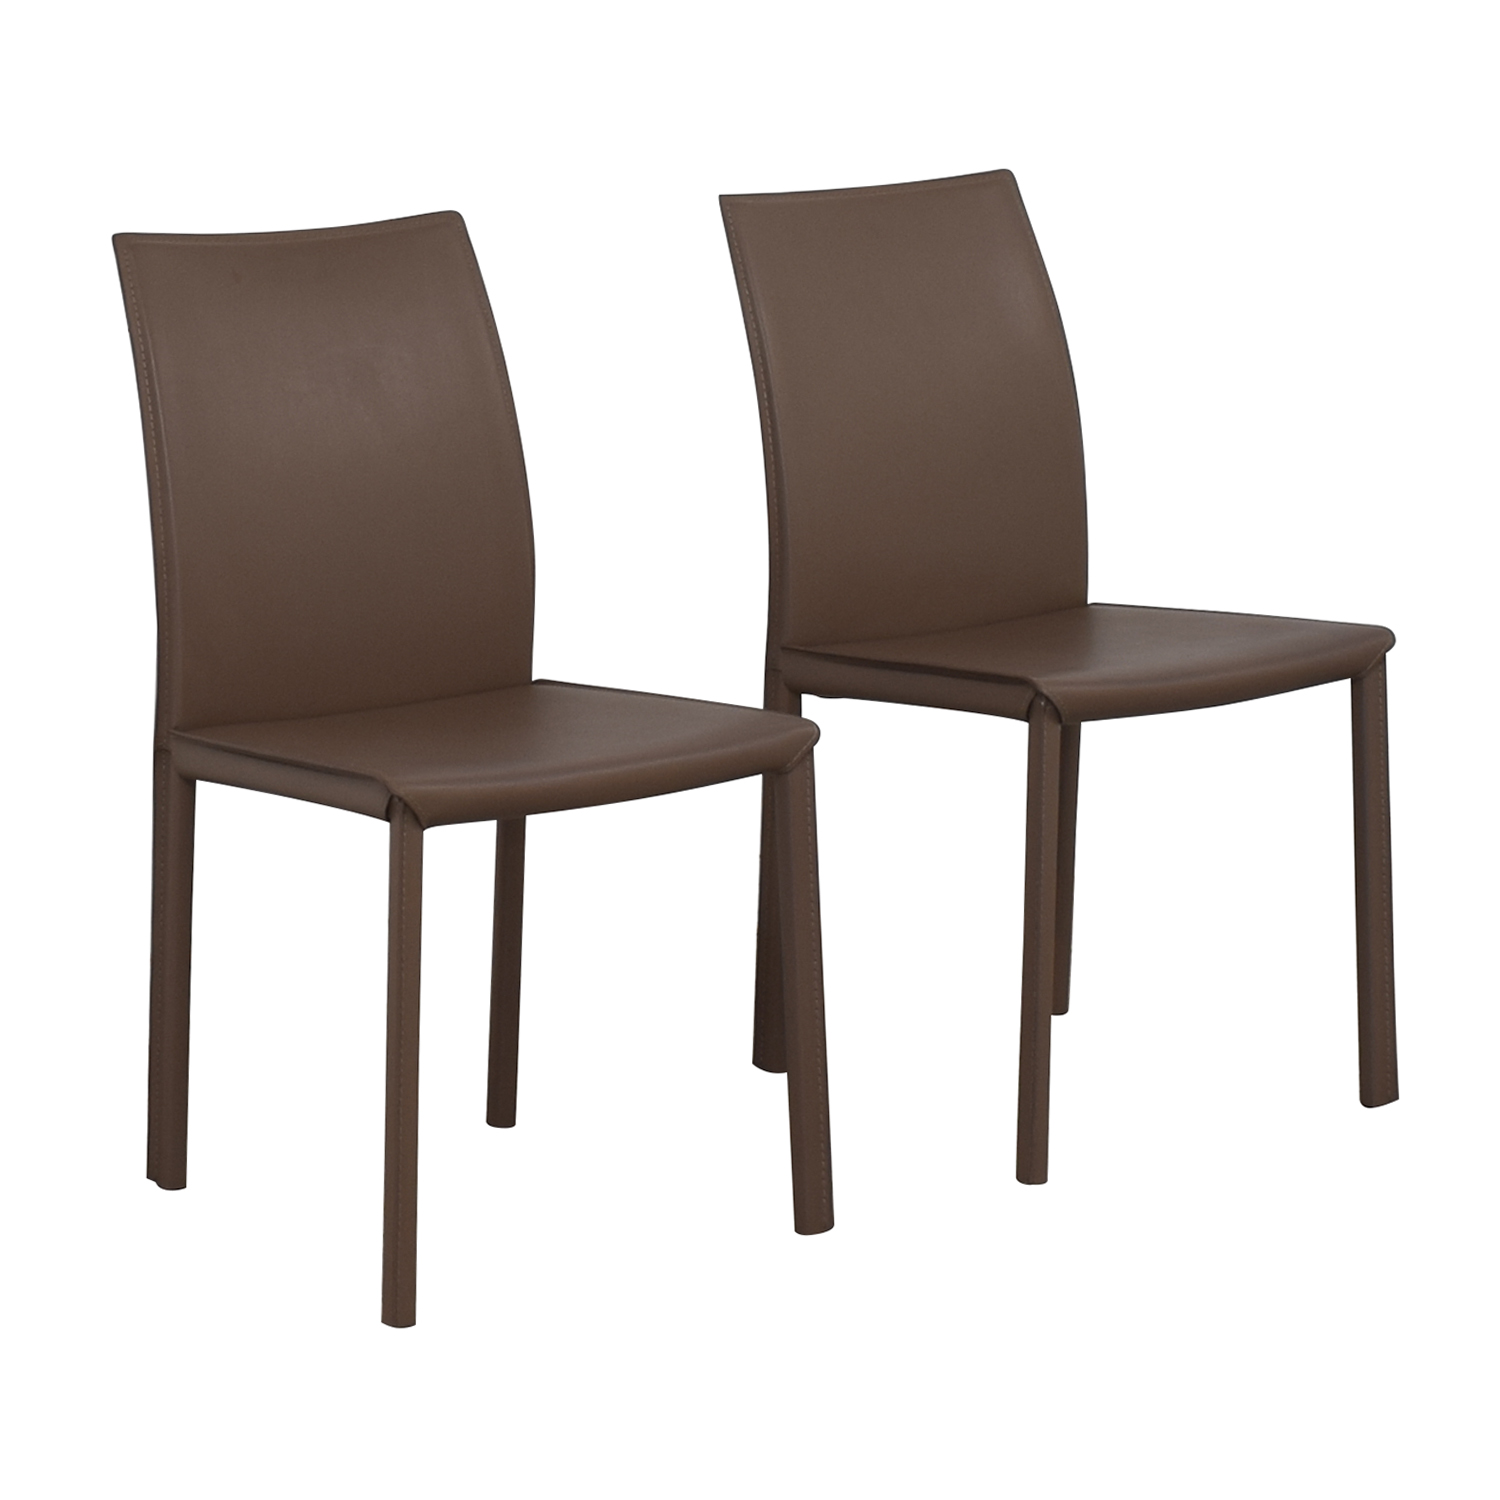 Admirable 71 Off Boconcept Boconcept Zarra Dining Chairs Chairs Caraccident5 Cool Chair Designs And Ideas Caraccident5Info